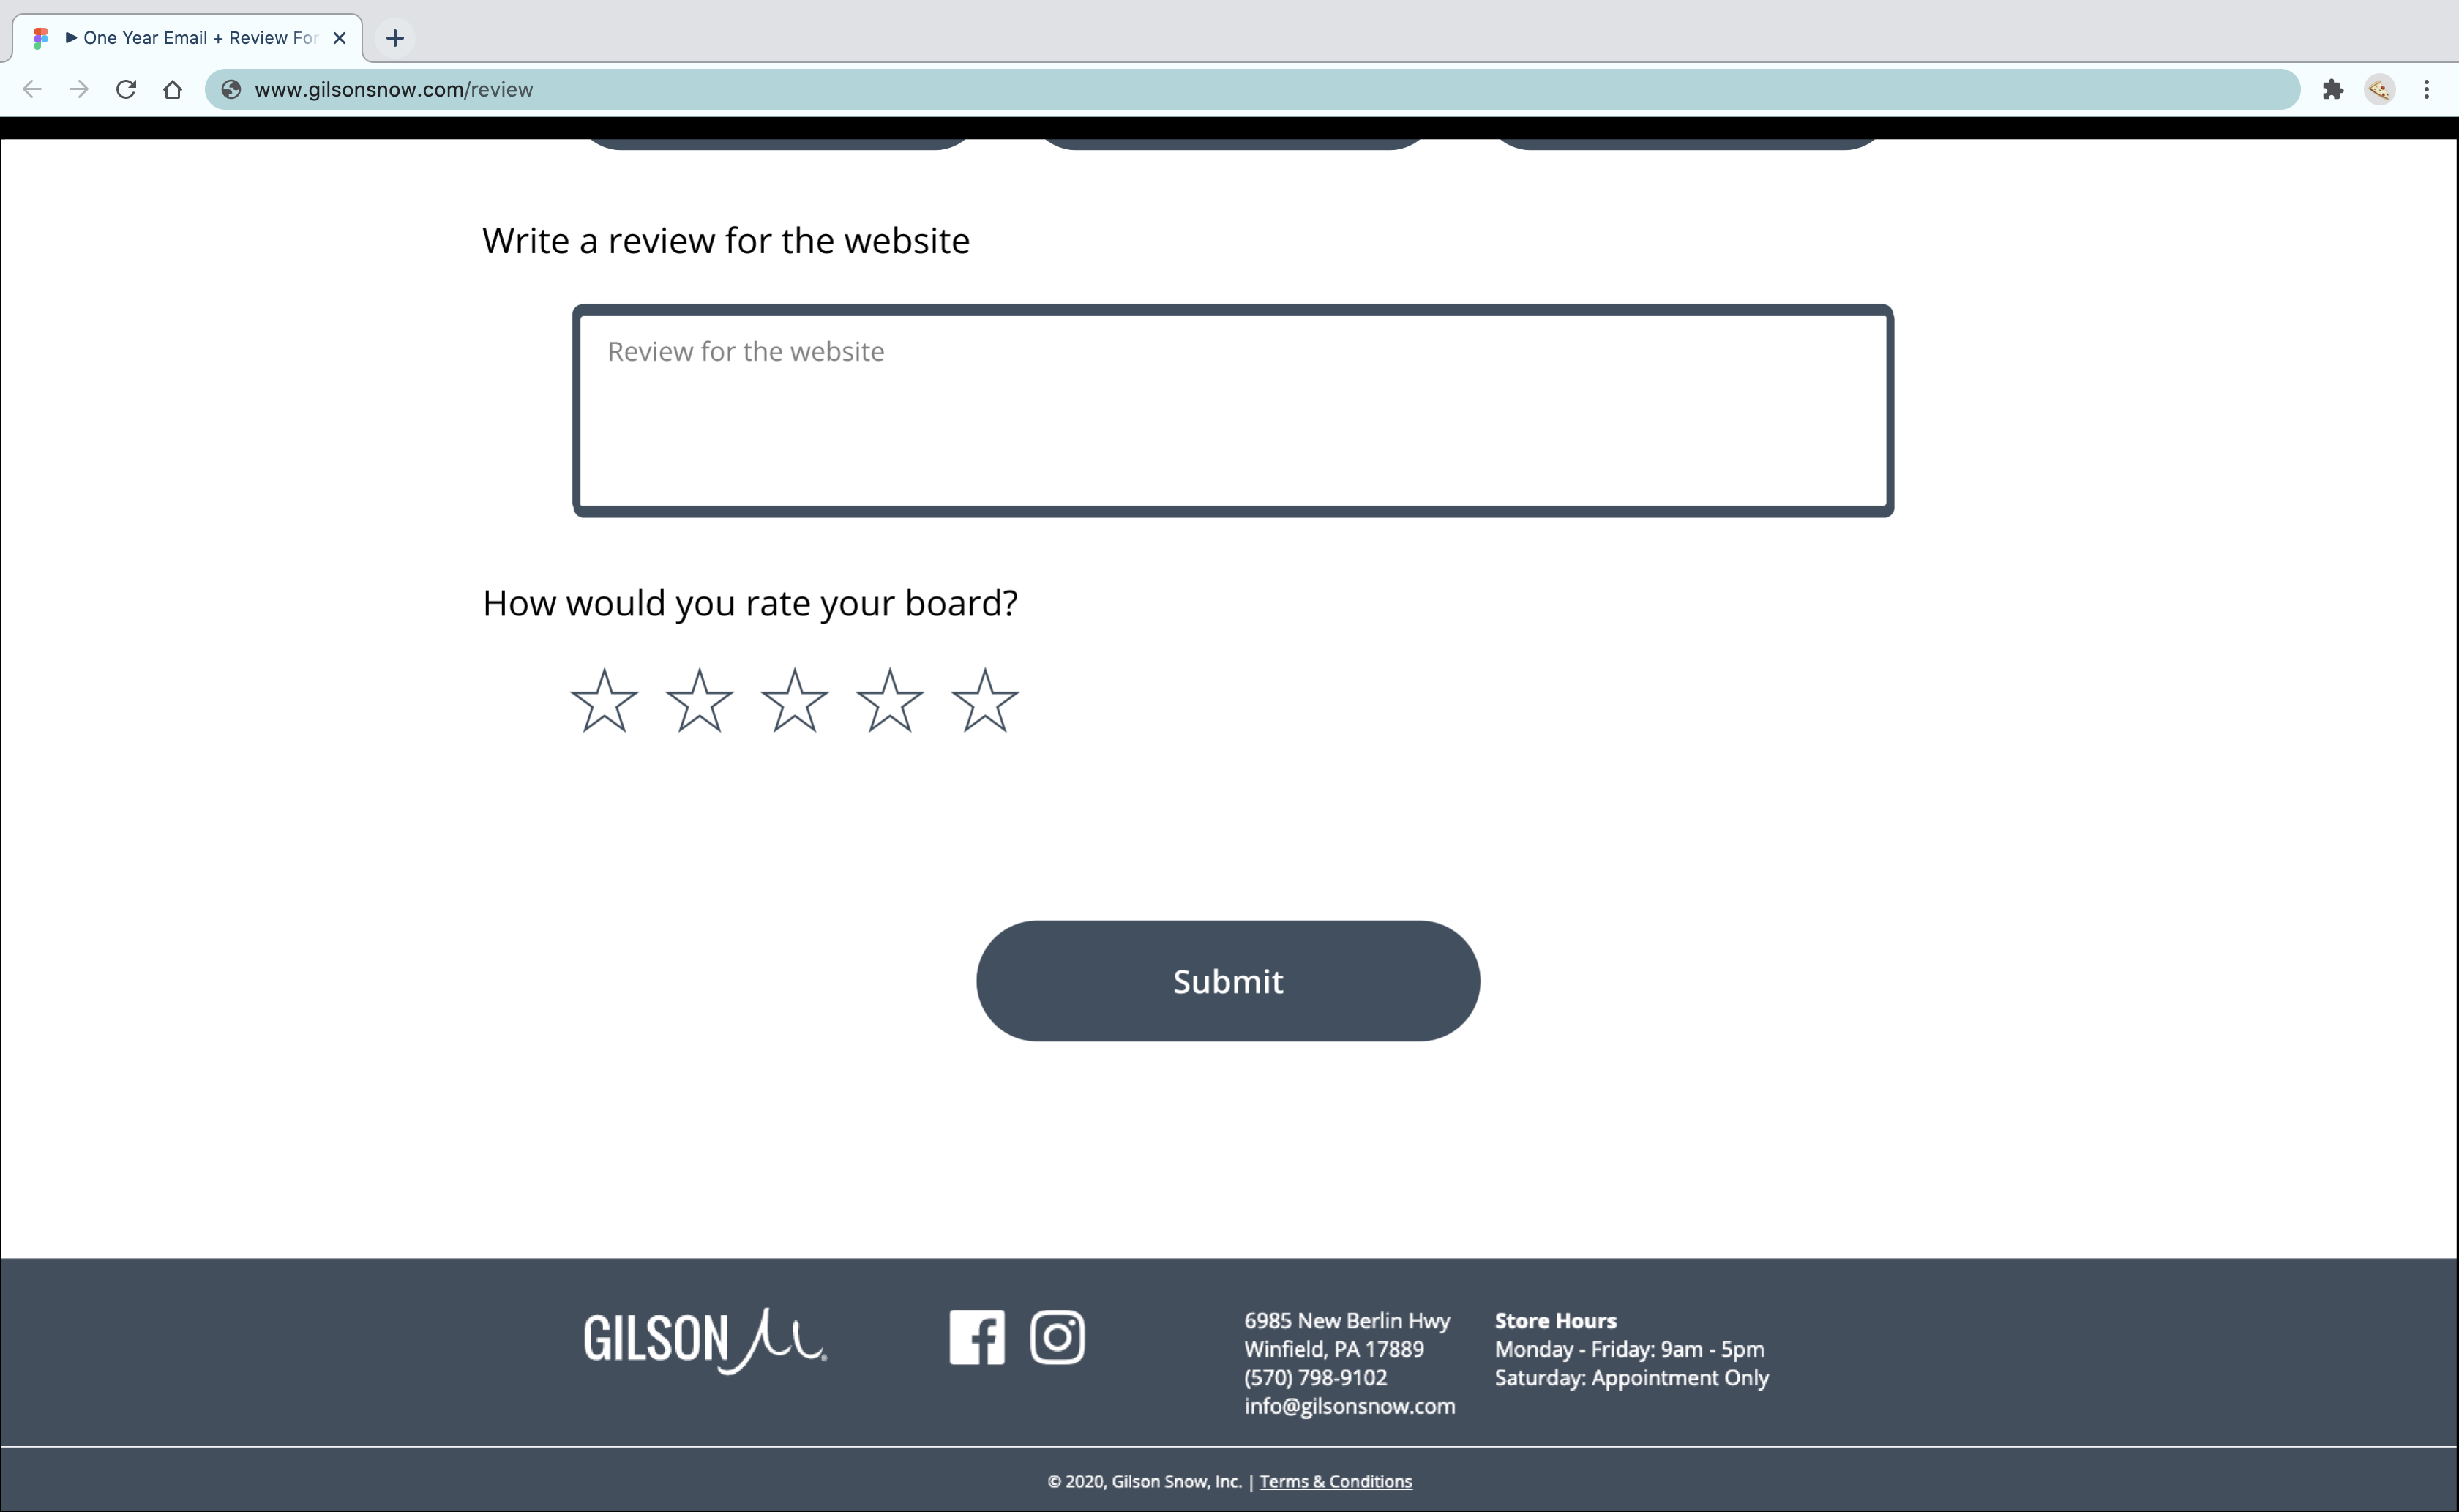 Bottom of review page prototype displaying submit button